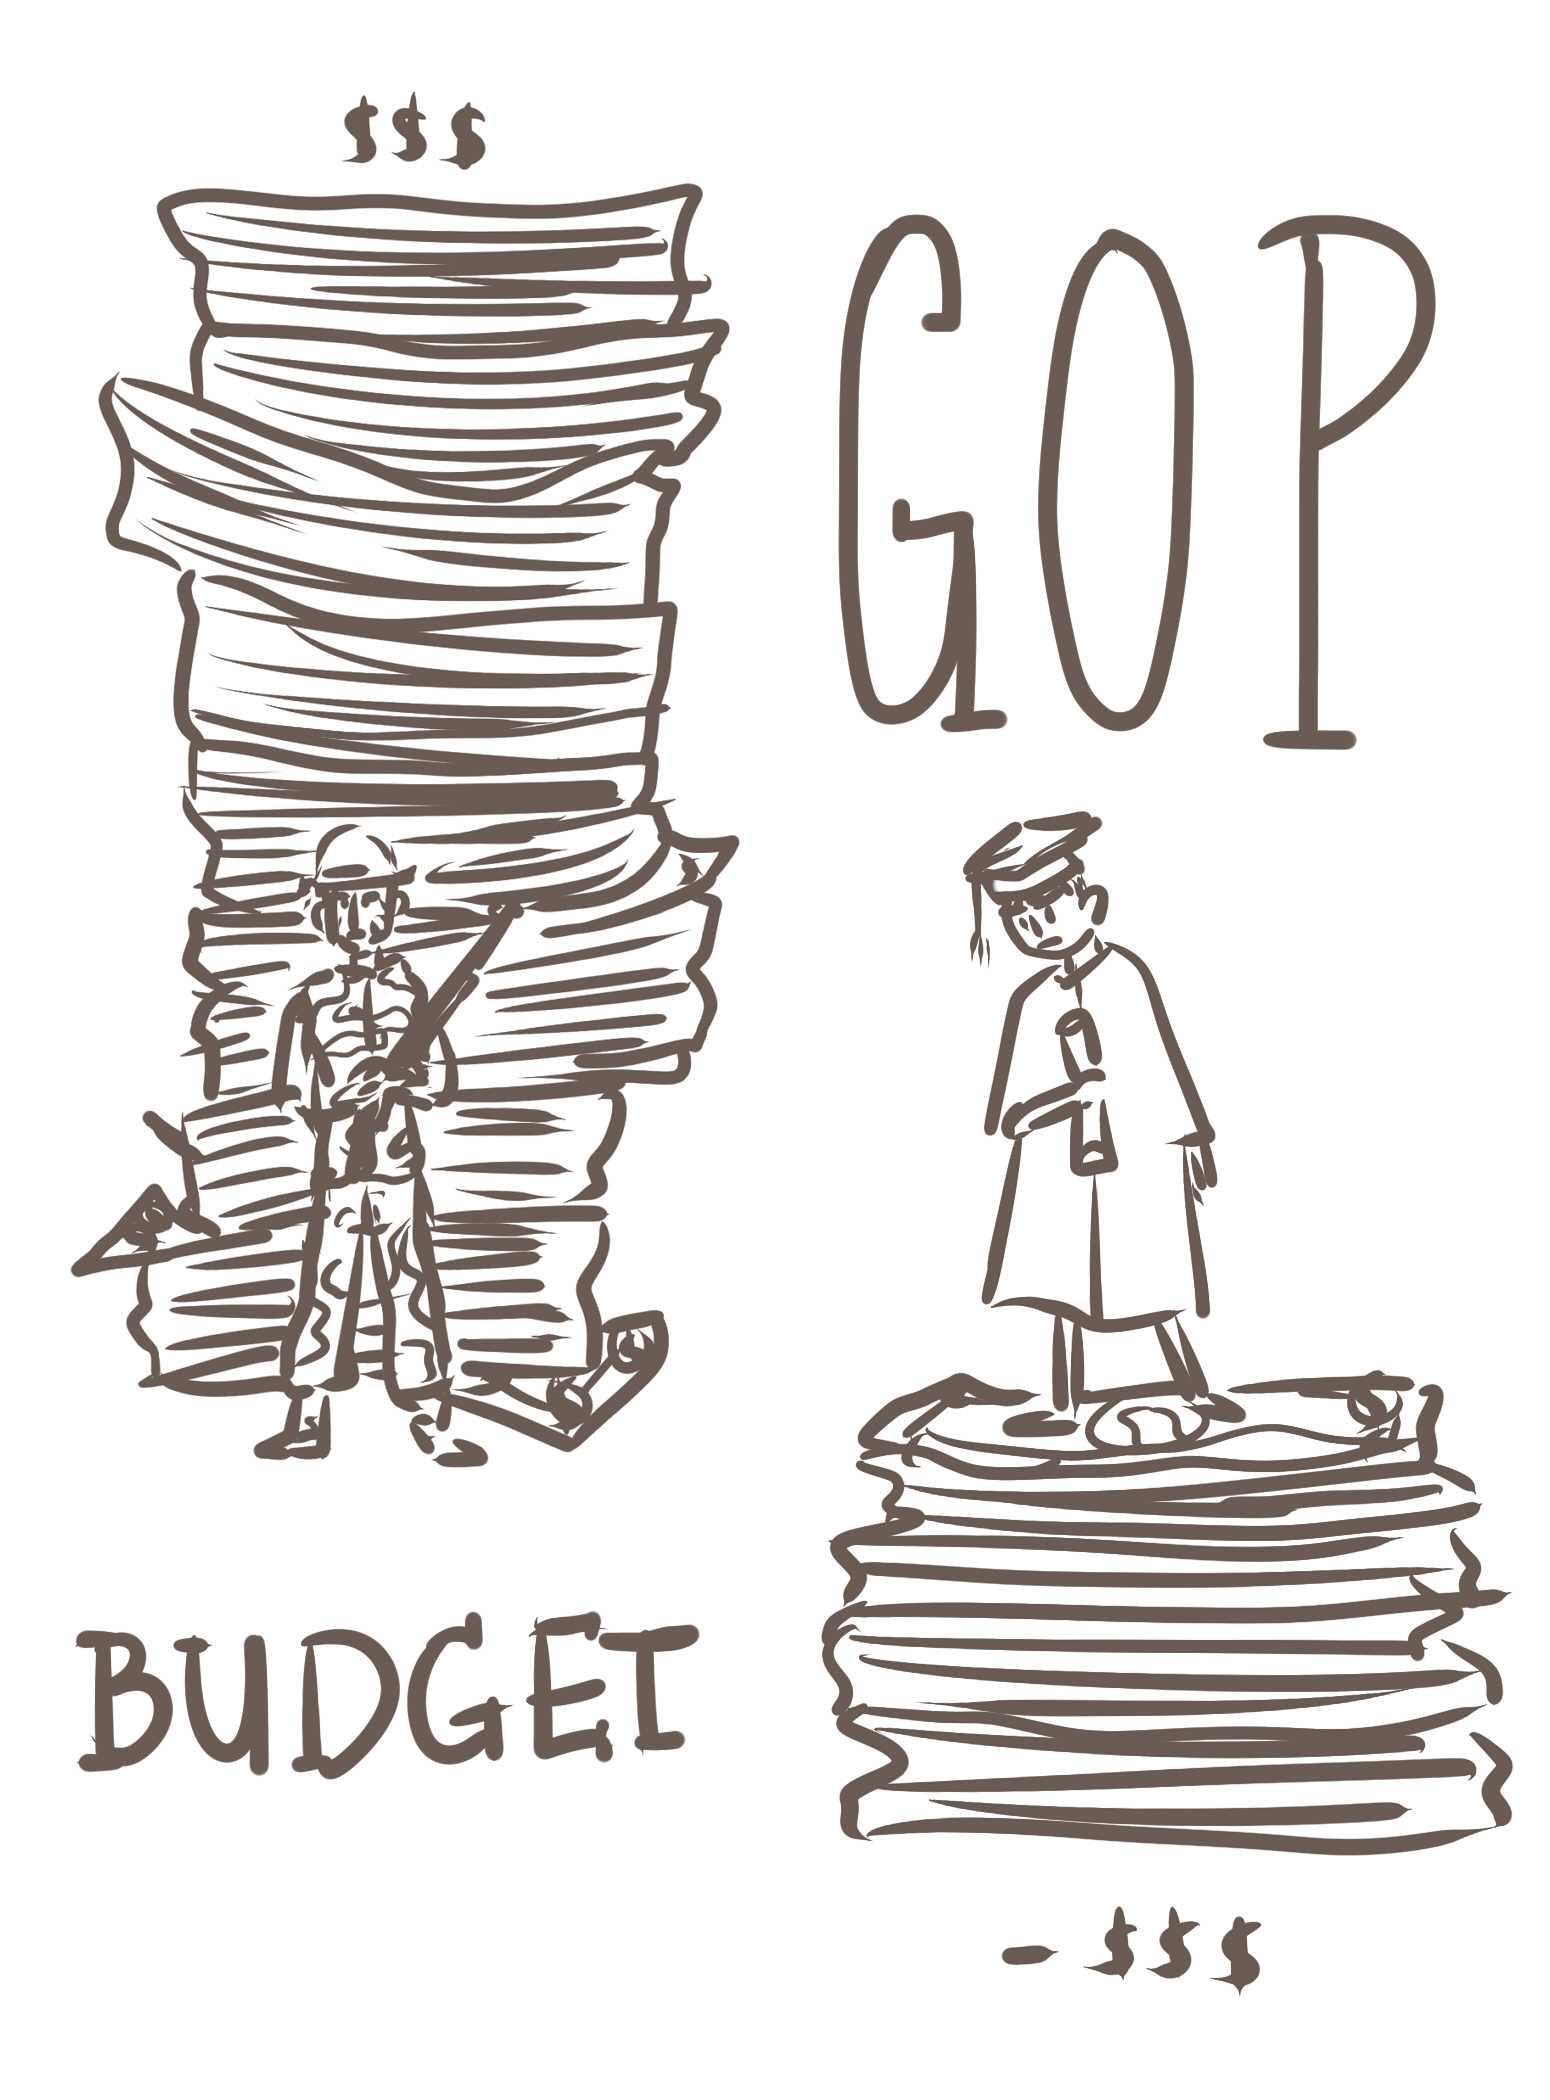 The GOP budget: forget the people, let's amp up the military!